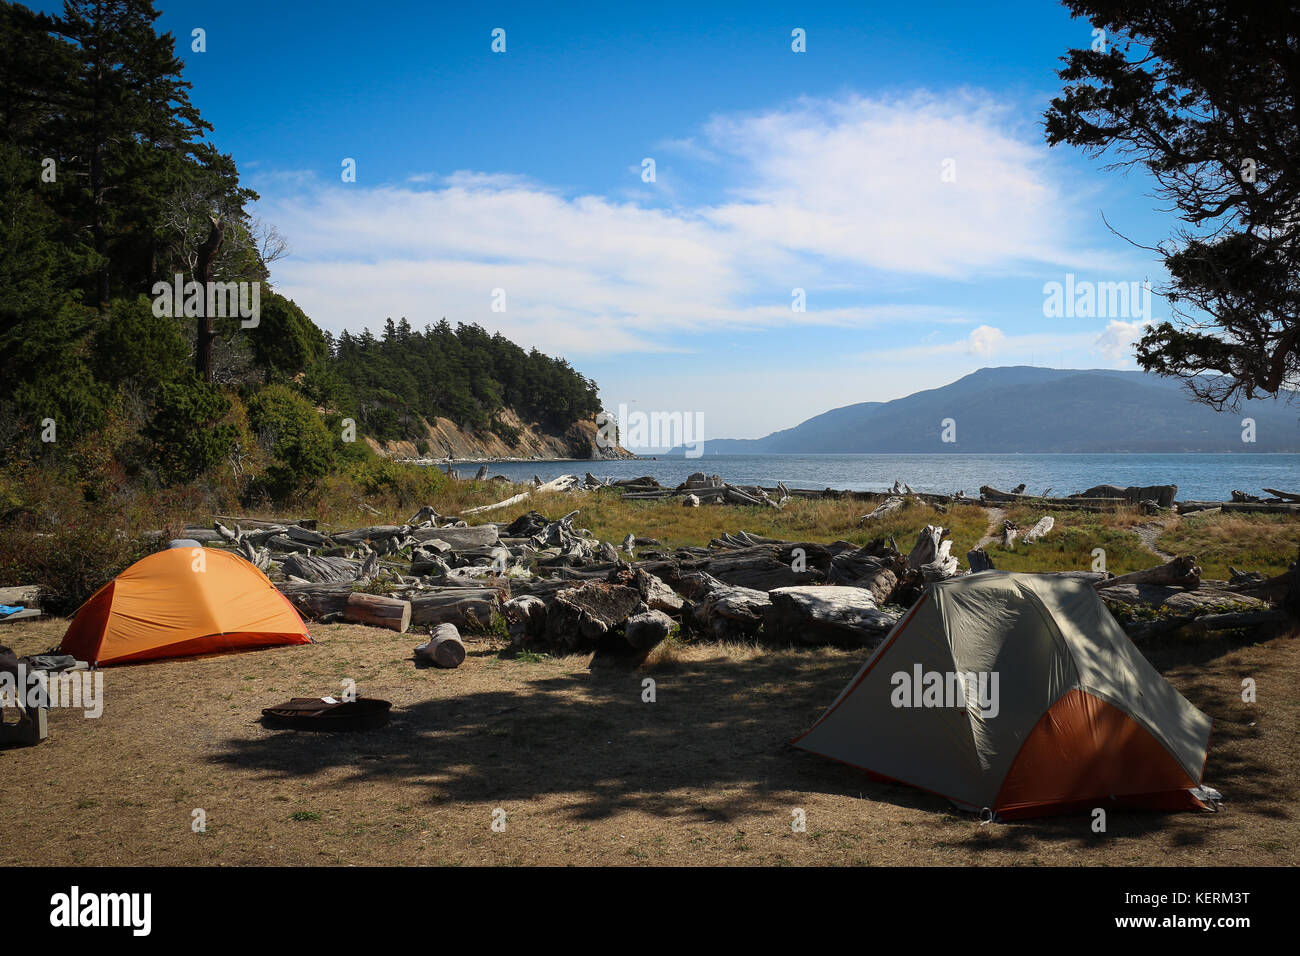 Two tents, one orange,one gray, on a campsite on Sucia Isand, Washington State, overlooking Puget Sound, Orcas Island, - Stock Image